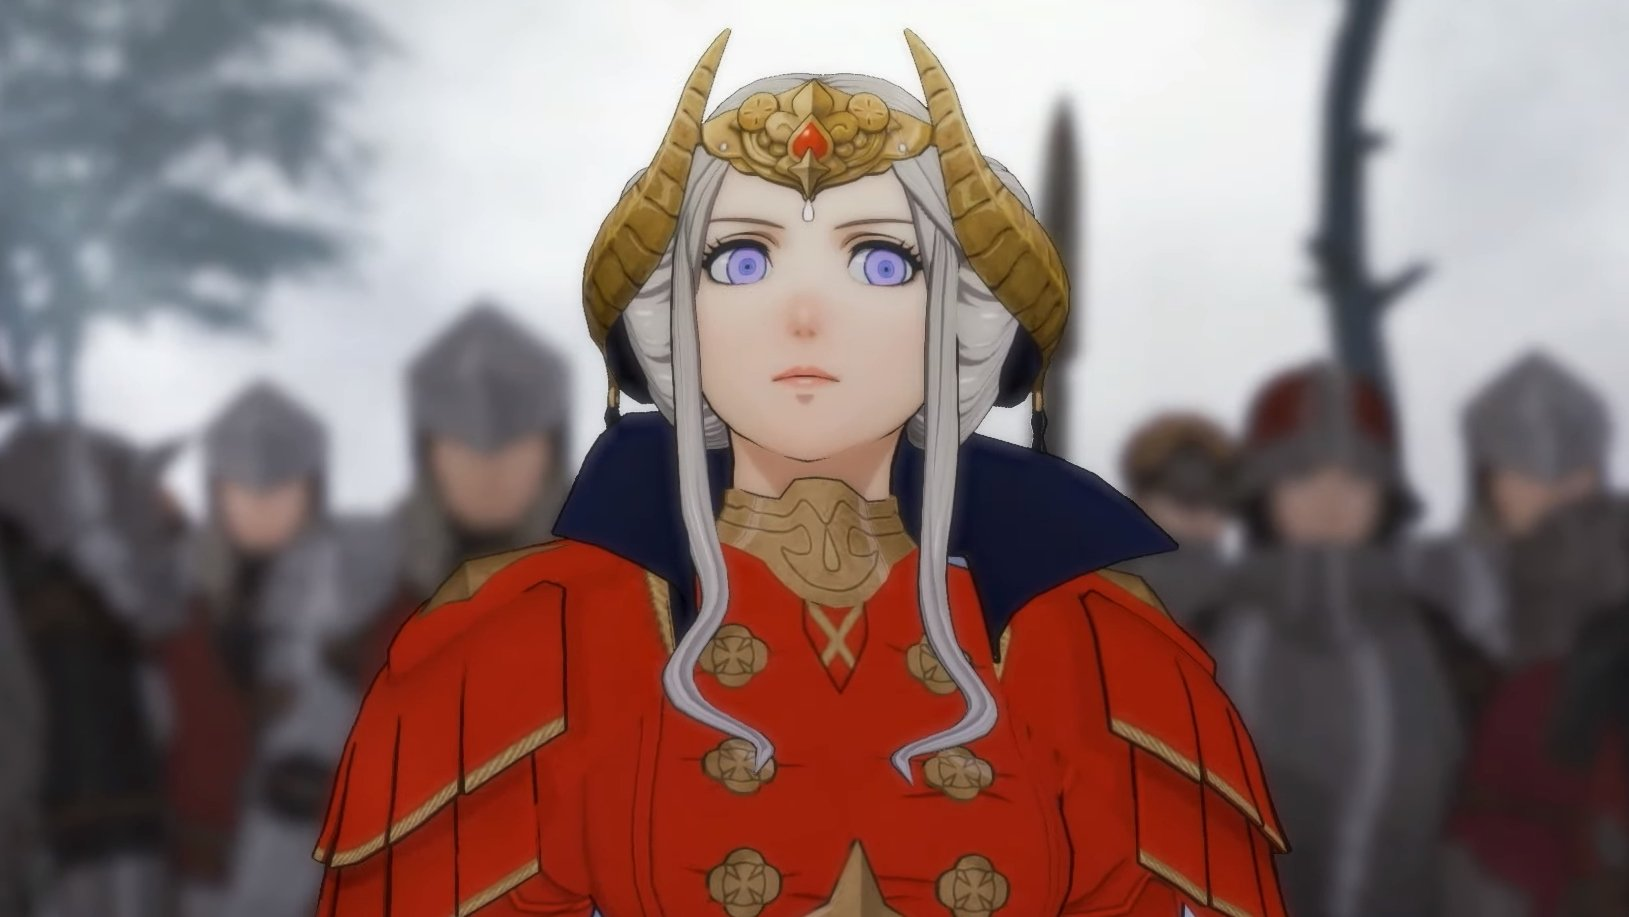 When does the Timeskip occur in Fire Emblem: Three Houses